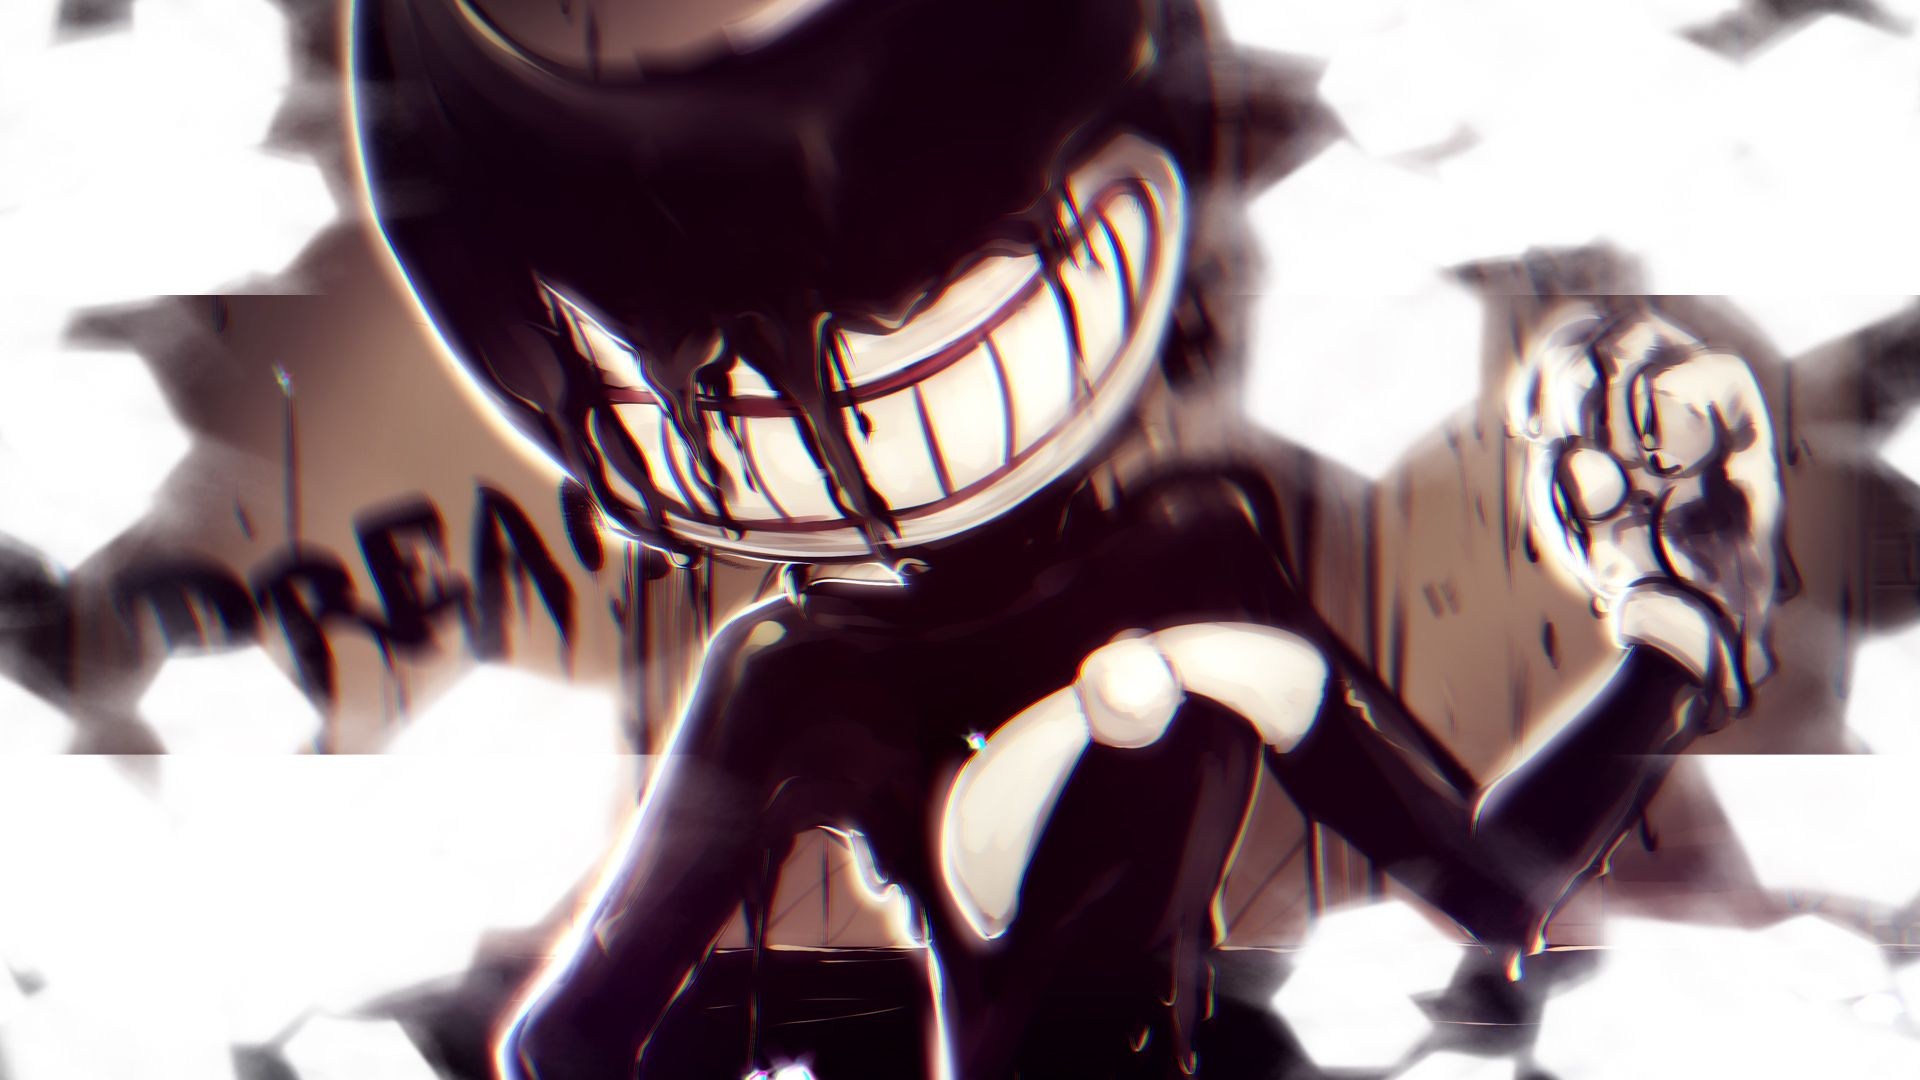 Listen And Download Download This Bendy The Ink Demon Wallpaper By Draw With Rydi For Free On Toneden Bendy And The Ink Machine Ink Fan Art